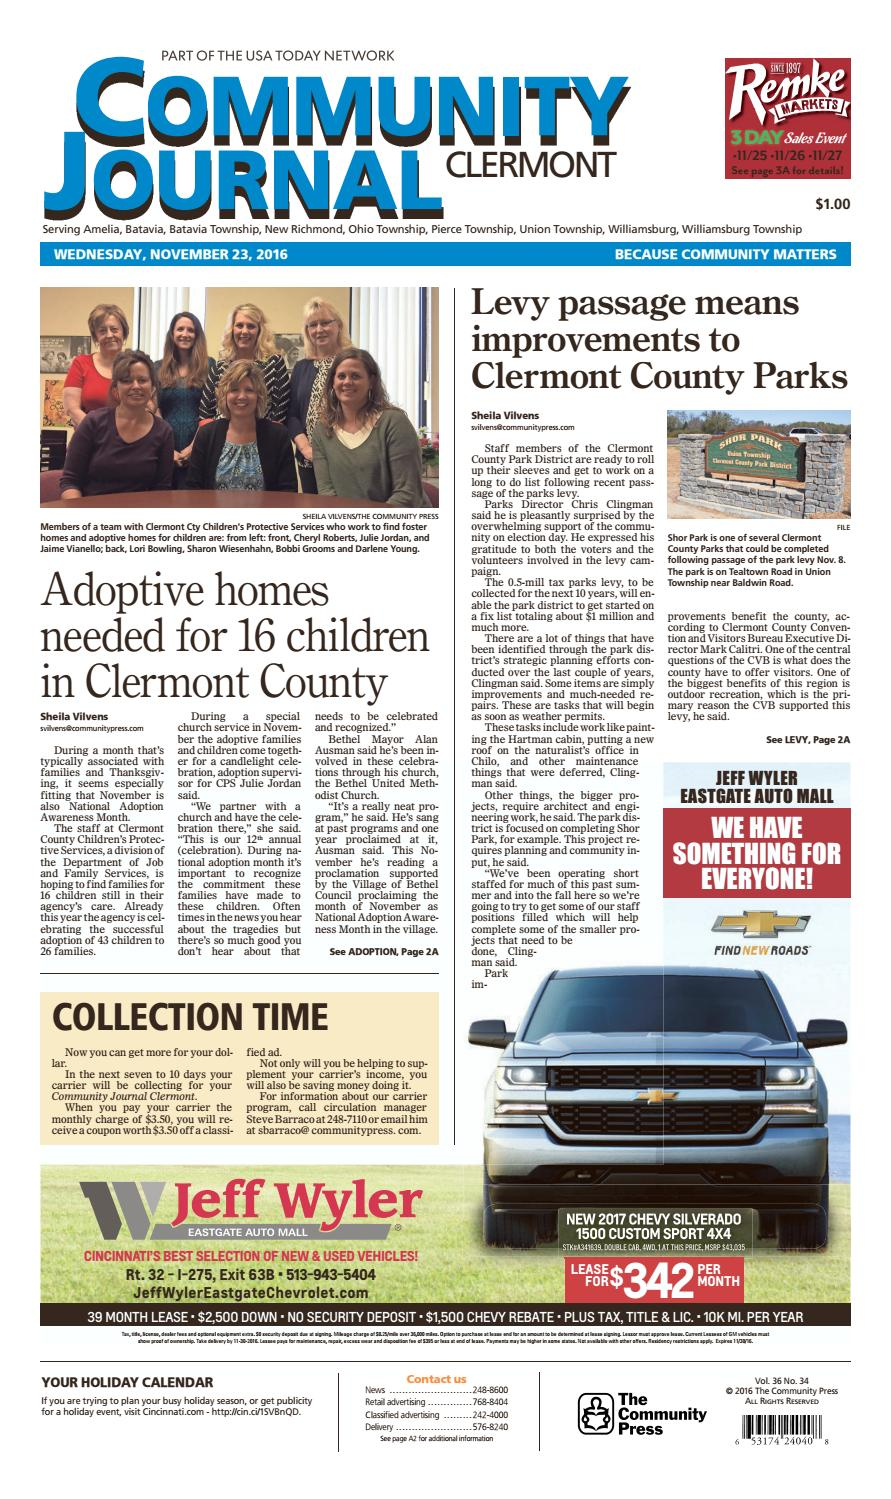 Community journal clermont 112316 by Enquirer Media - issuu